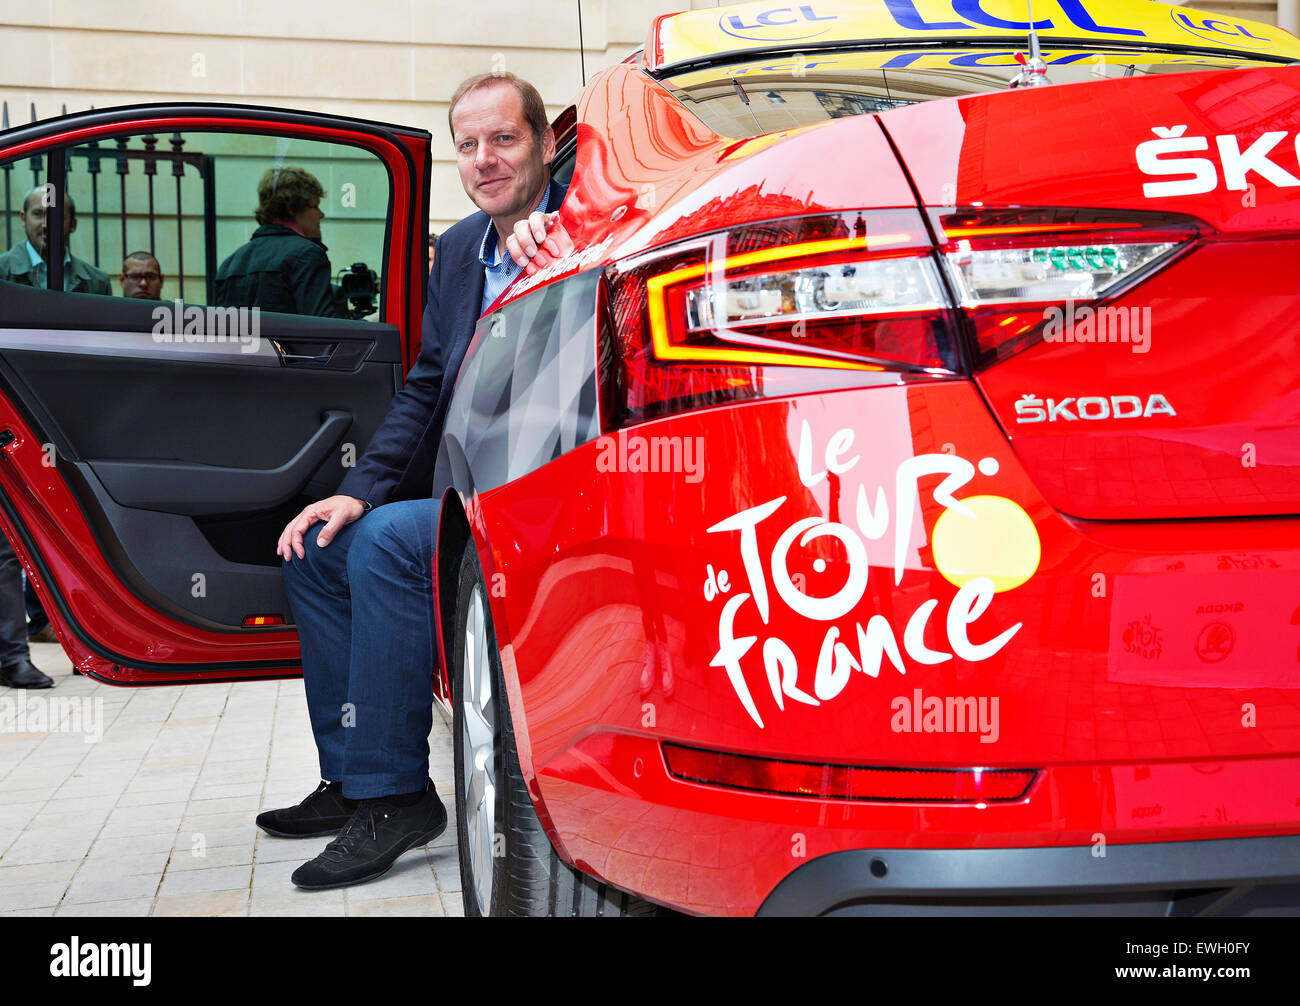 skoda superb tour de france rouge voiture pour directeur tour de france christian prudhomme. Black Bedroom Furniture Sets. Home Design Ideas